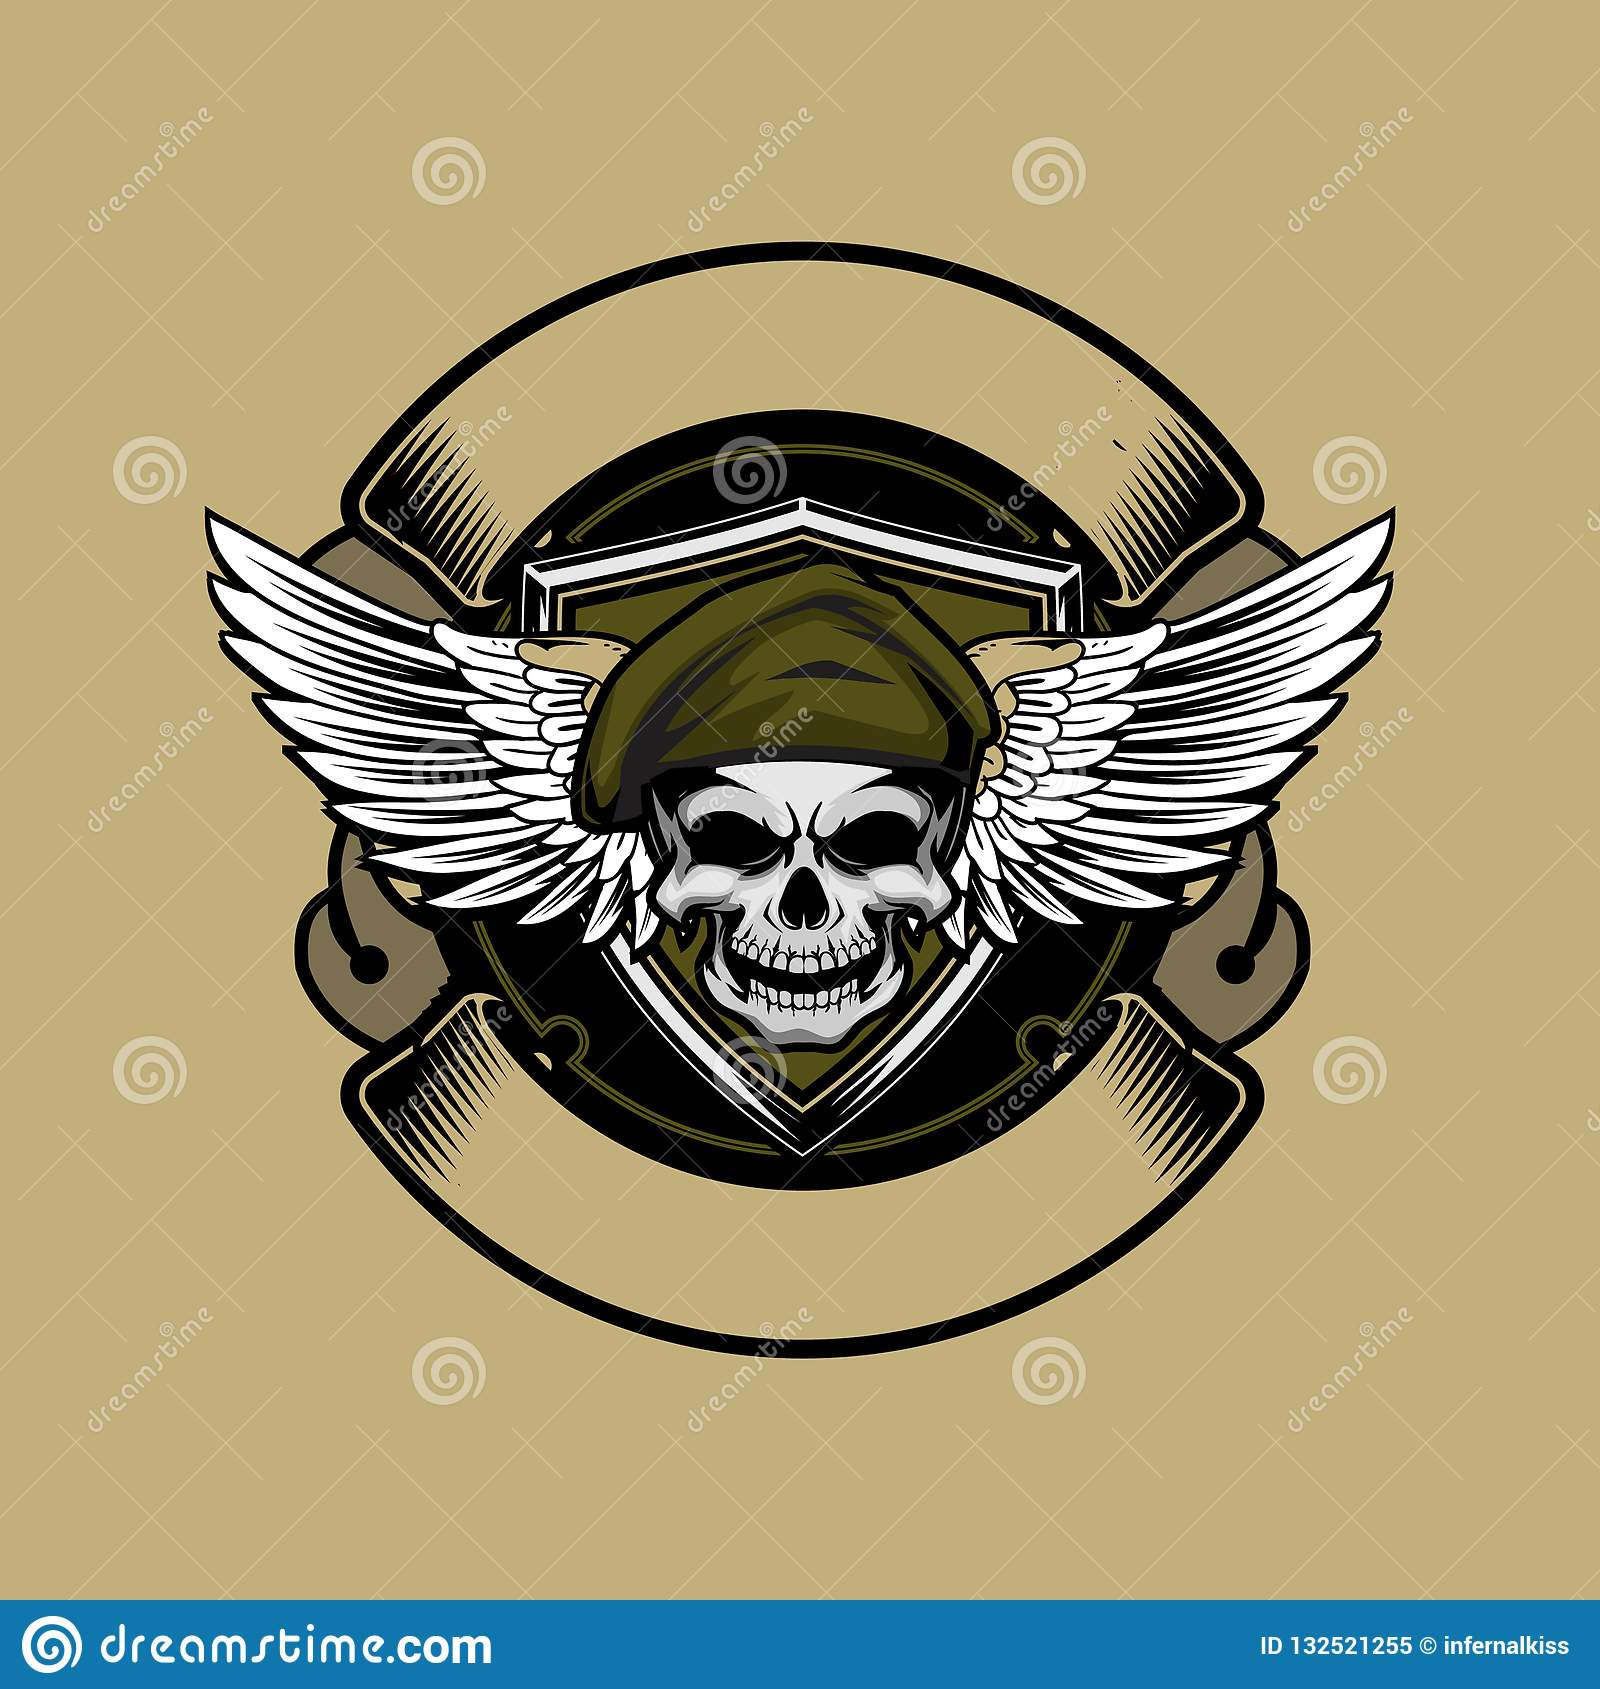 Soldier skull head with beret and wing vector ribbon logo round template